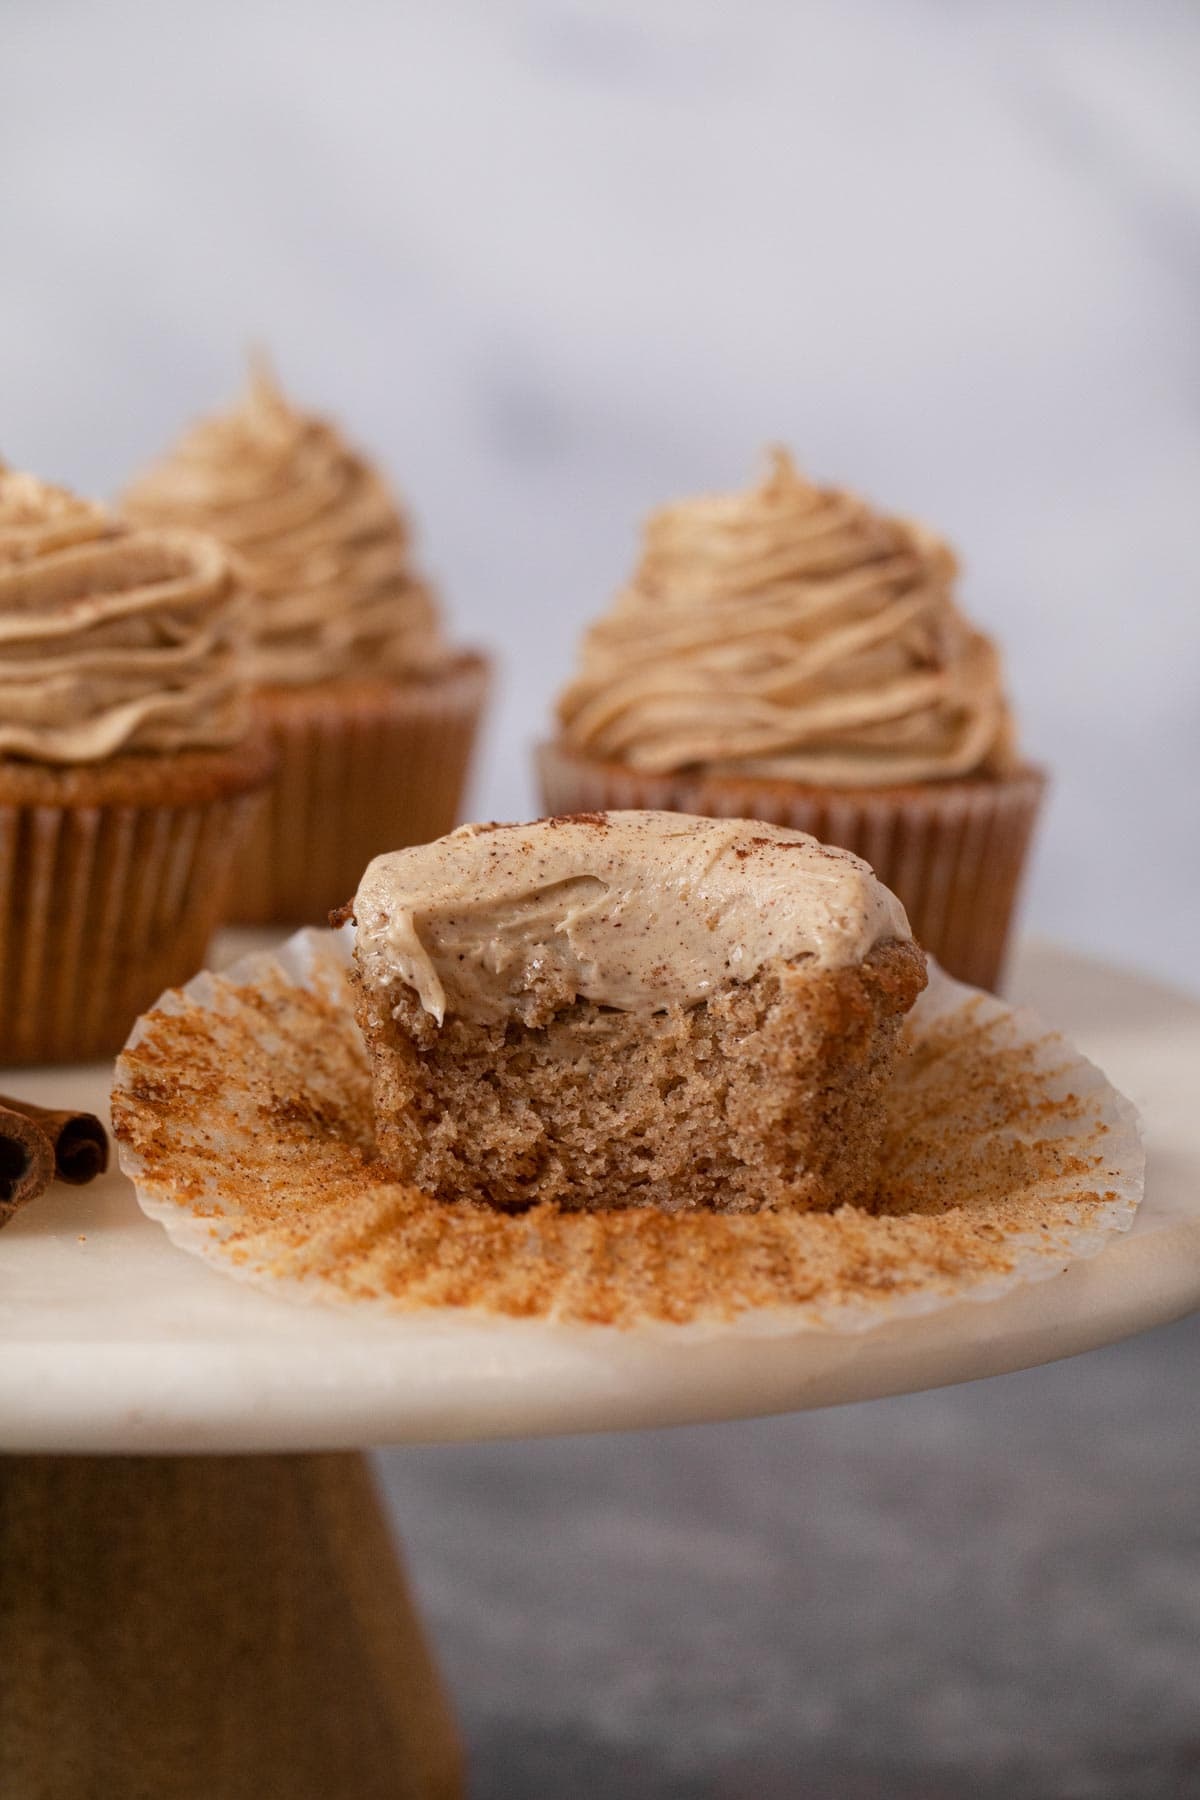 Snickerdoodle Cupcakes with bite removed on cake stand